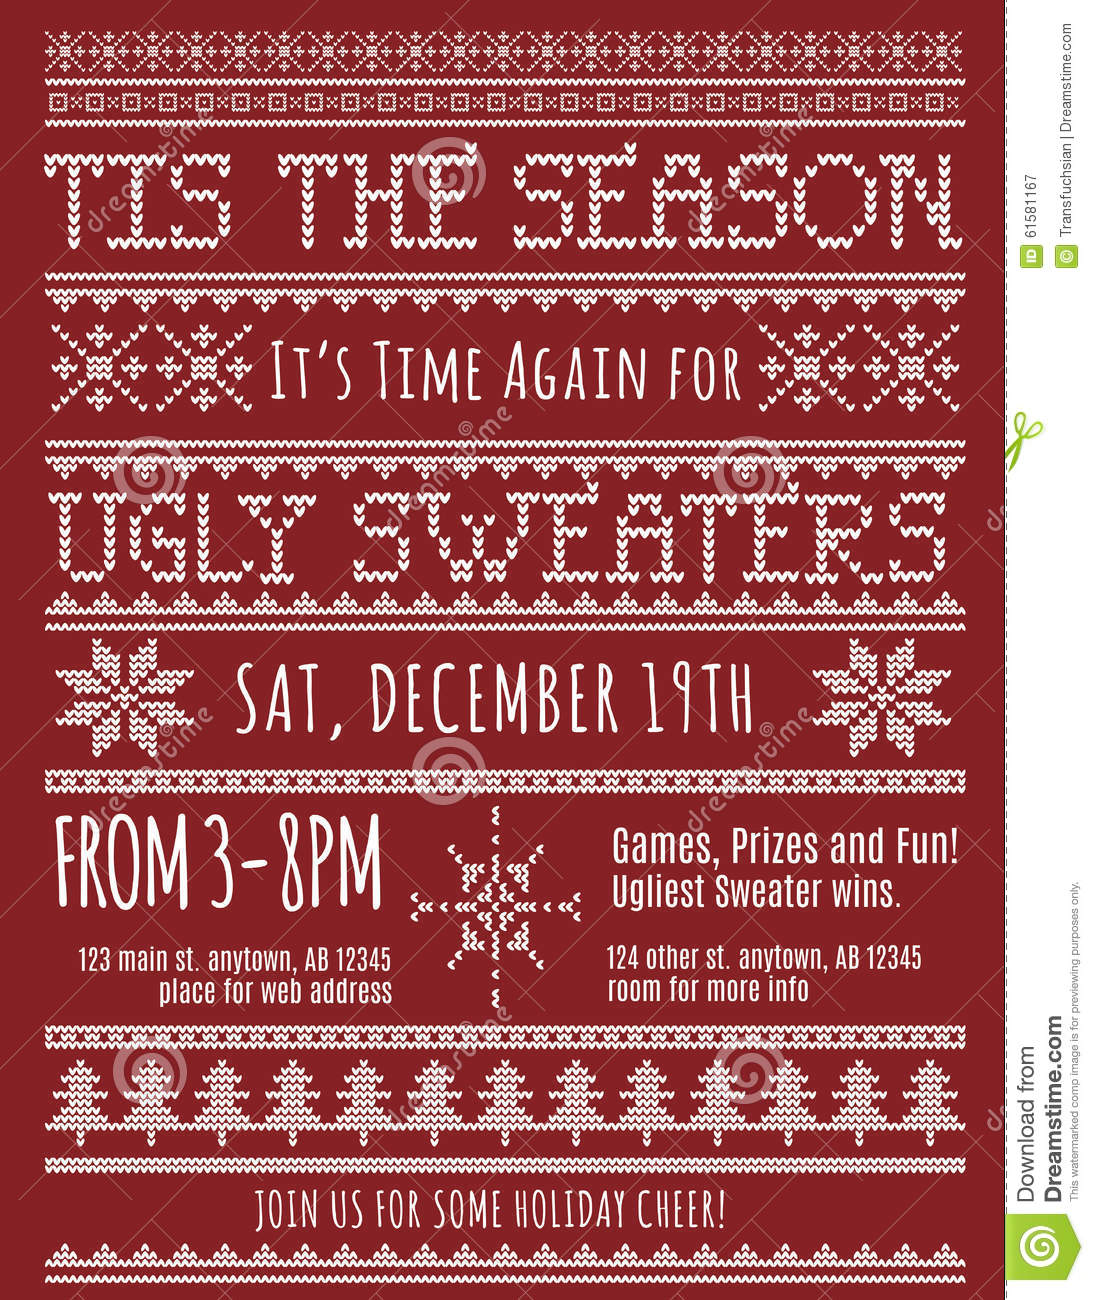 Ugly Christmas Sweater Party Invitation Stock Vector - Image: 61581167